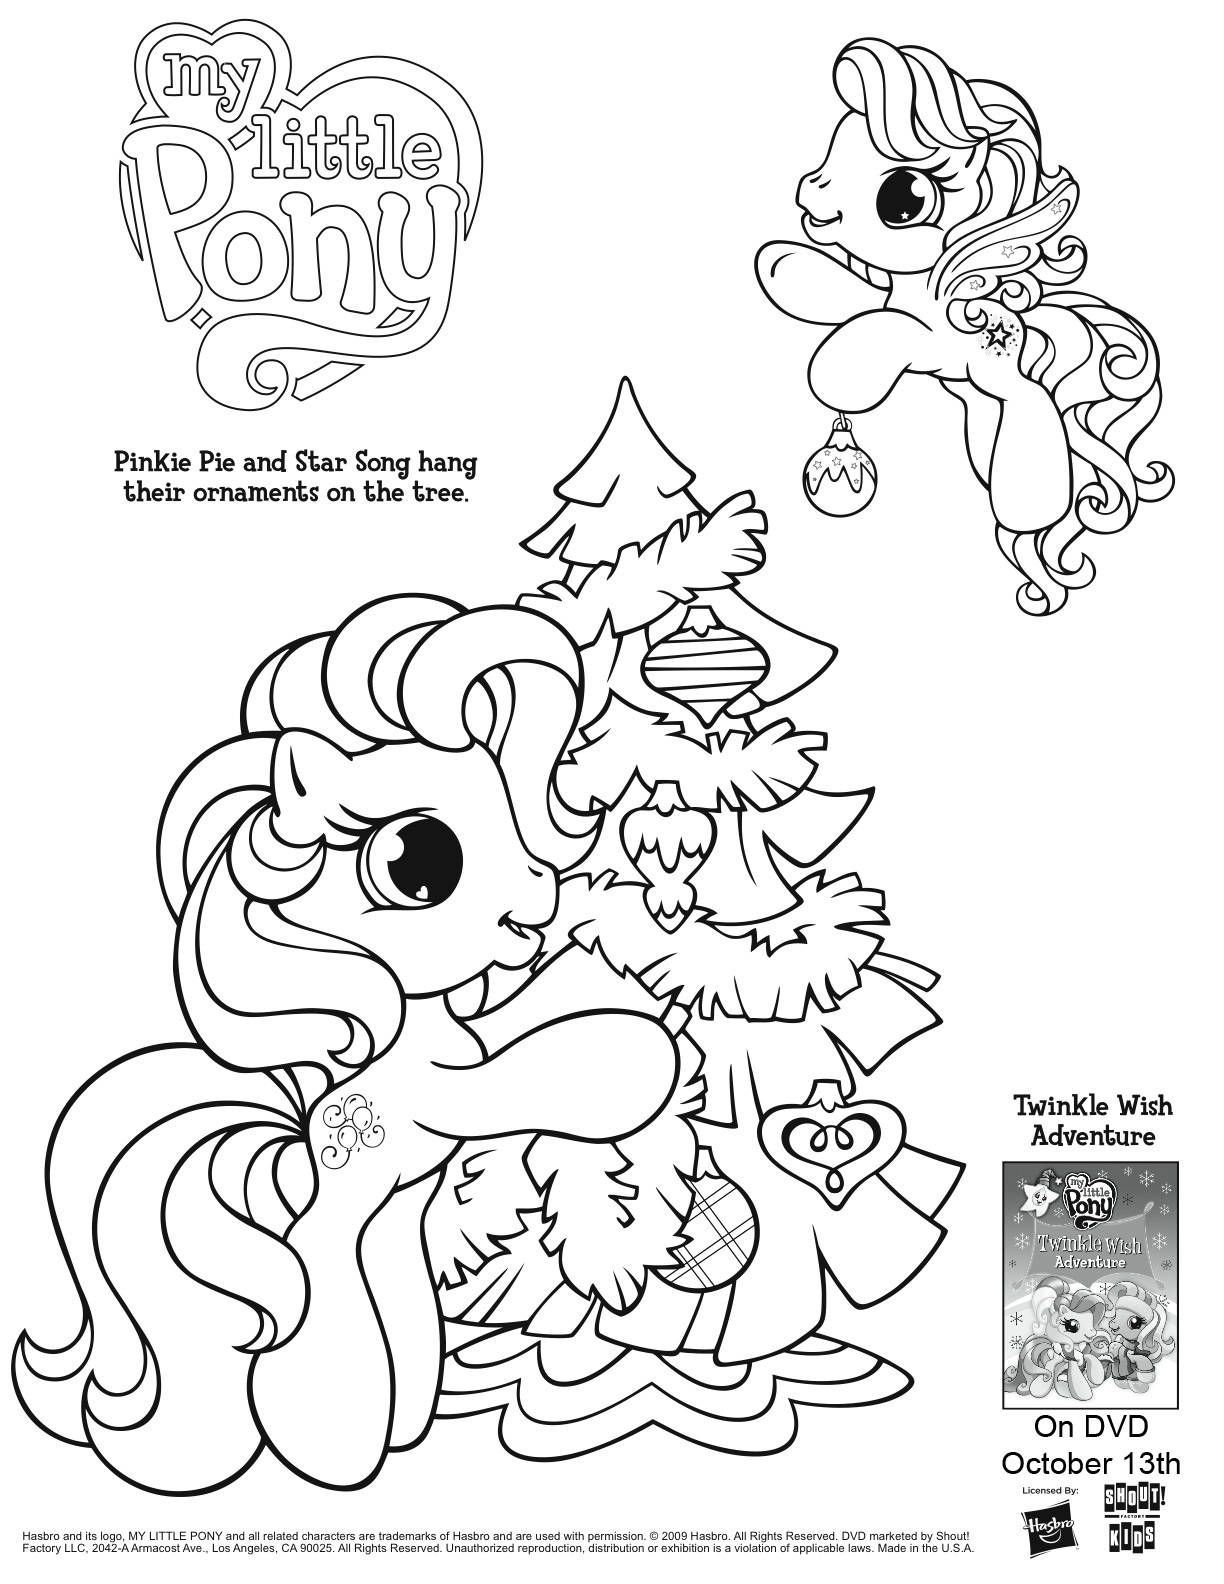 Christmas Colouring Pages To Print Off My Little Pony Coloring Christmas Coloring Pages Thanksgiving Coloring Pages